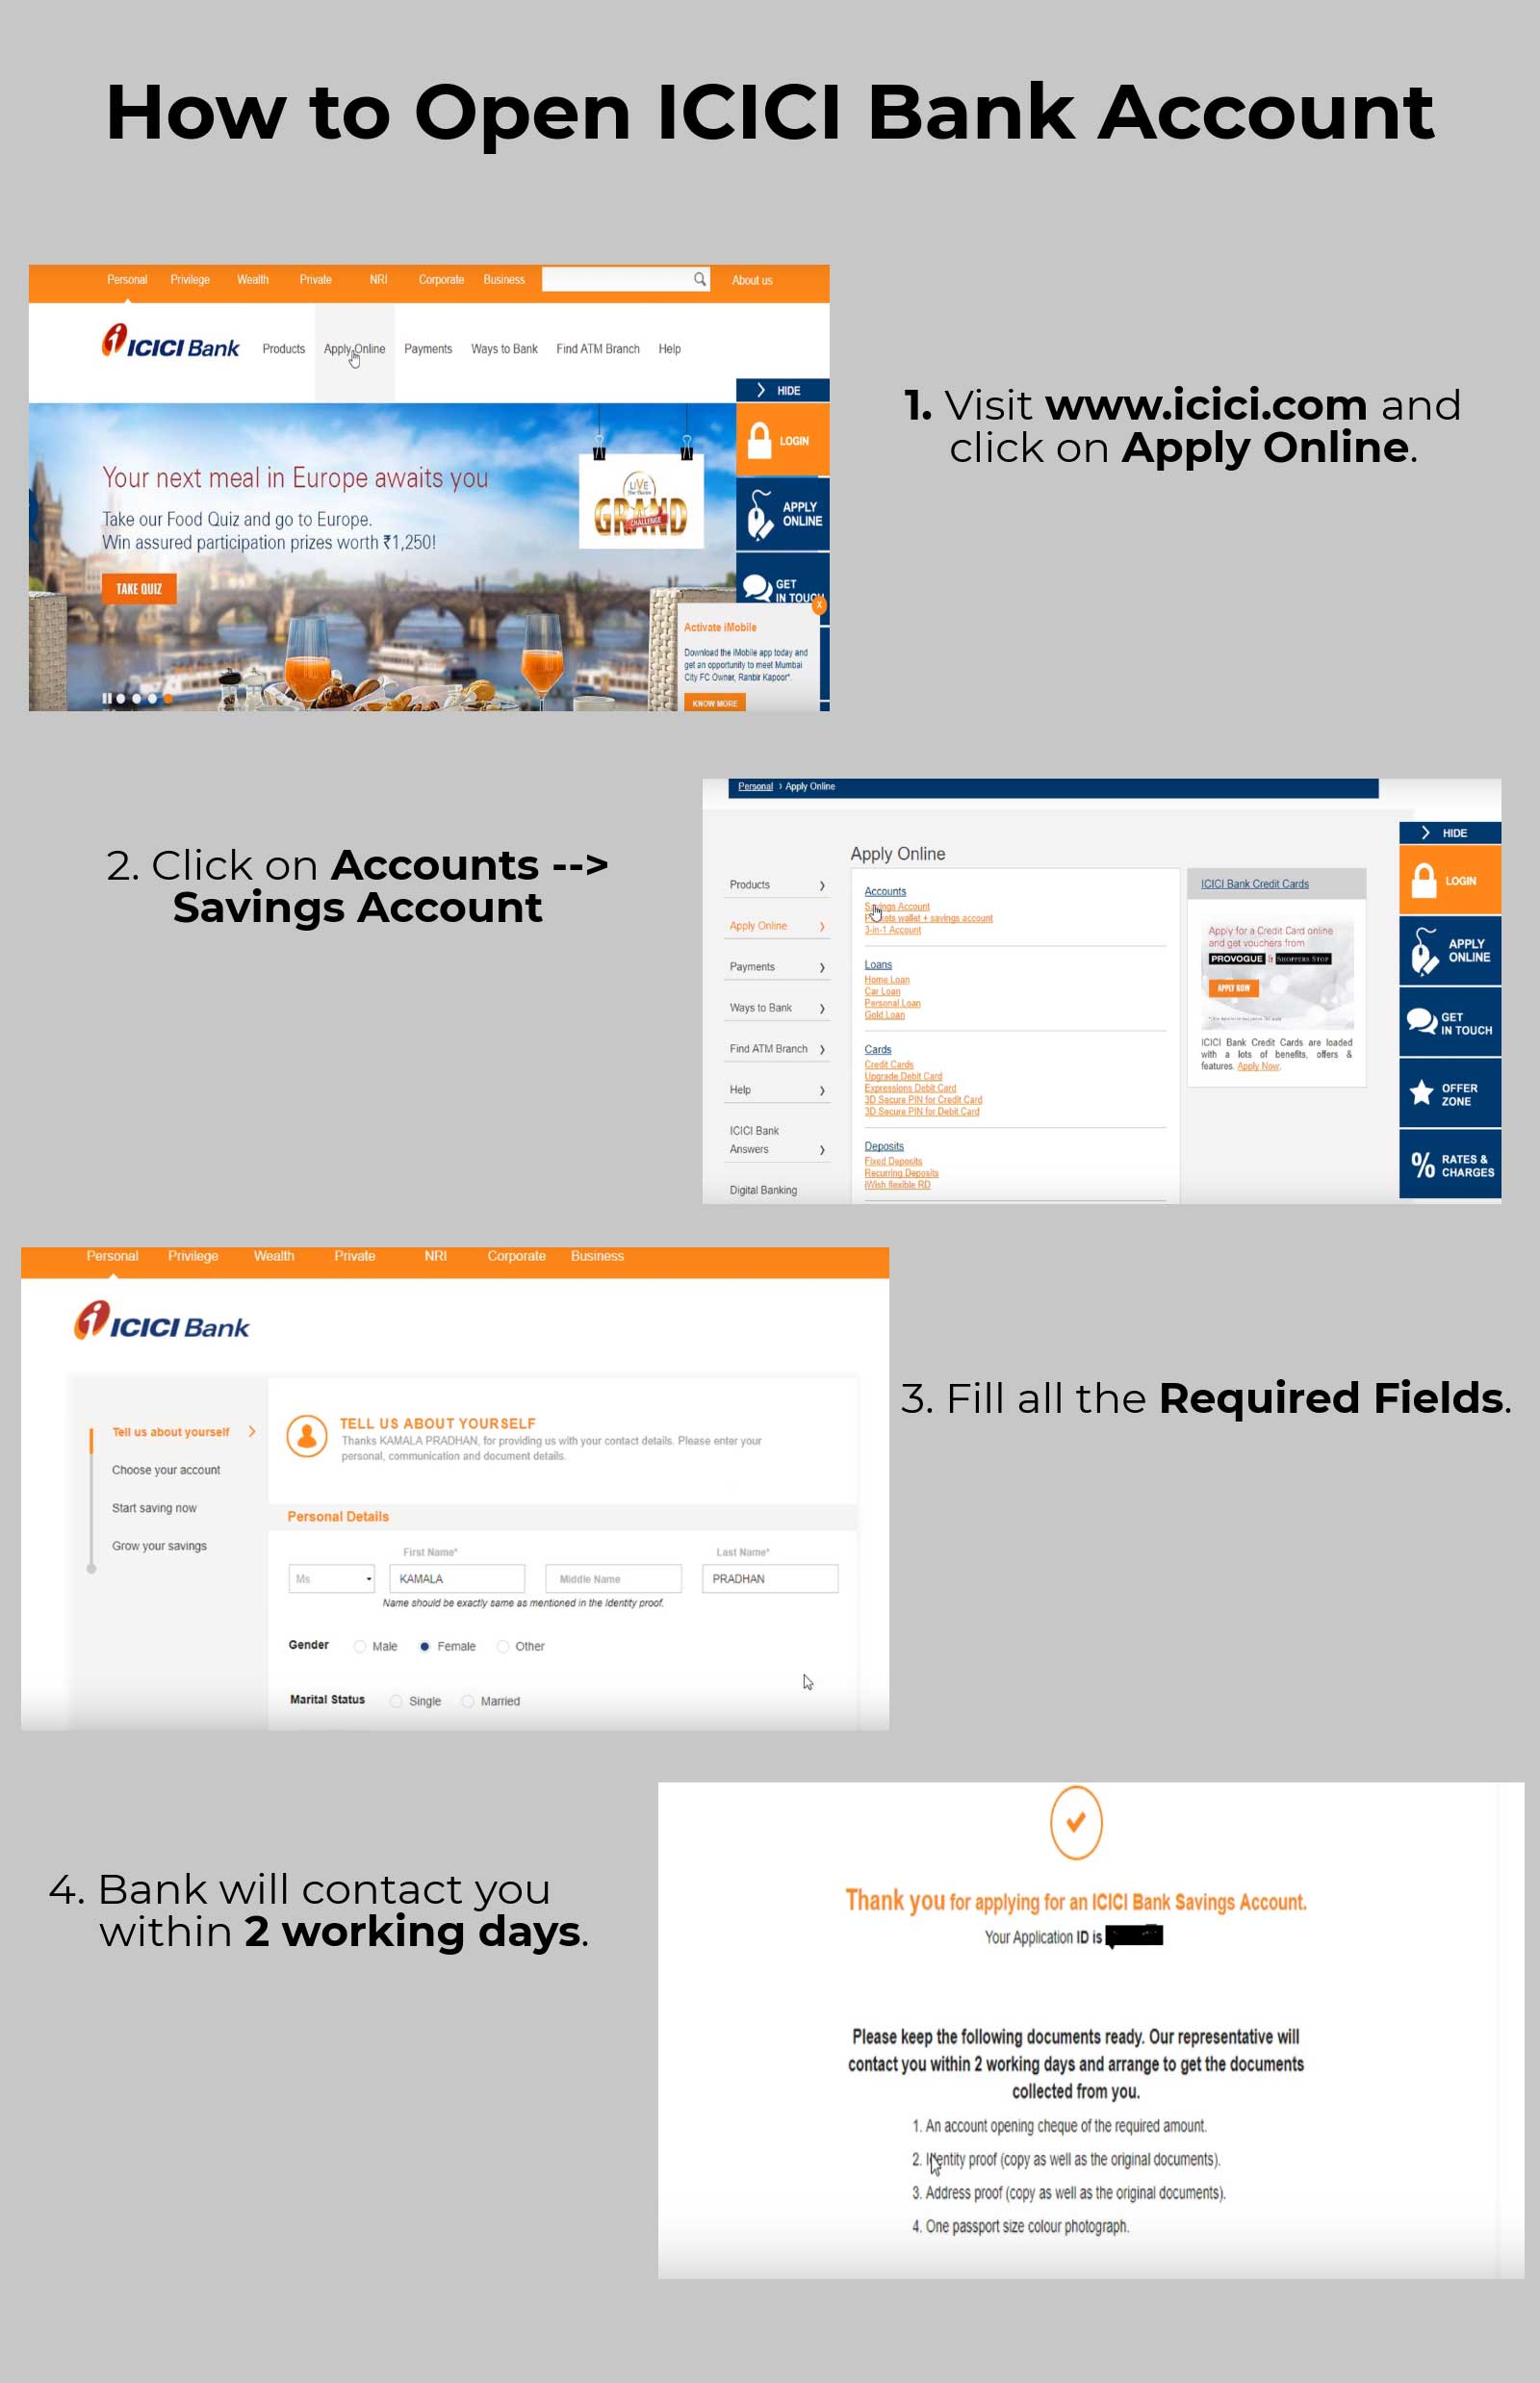 1.    Visit www.icici.com and click on Apply Online.                     2.  Click on Accounts --> Savings Account.                     3.  Fill all the Required Fields.                     4.  Bank will contact you within 2 working days.